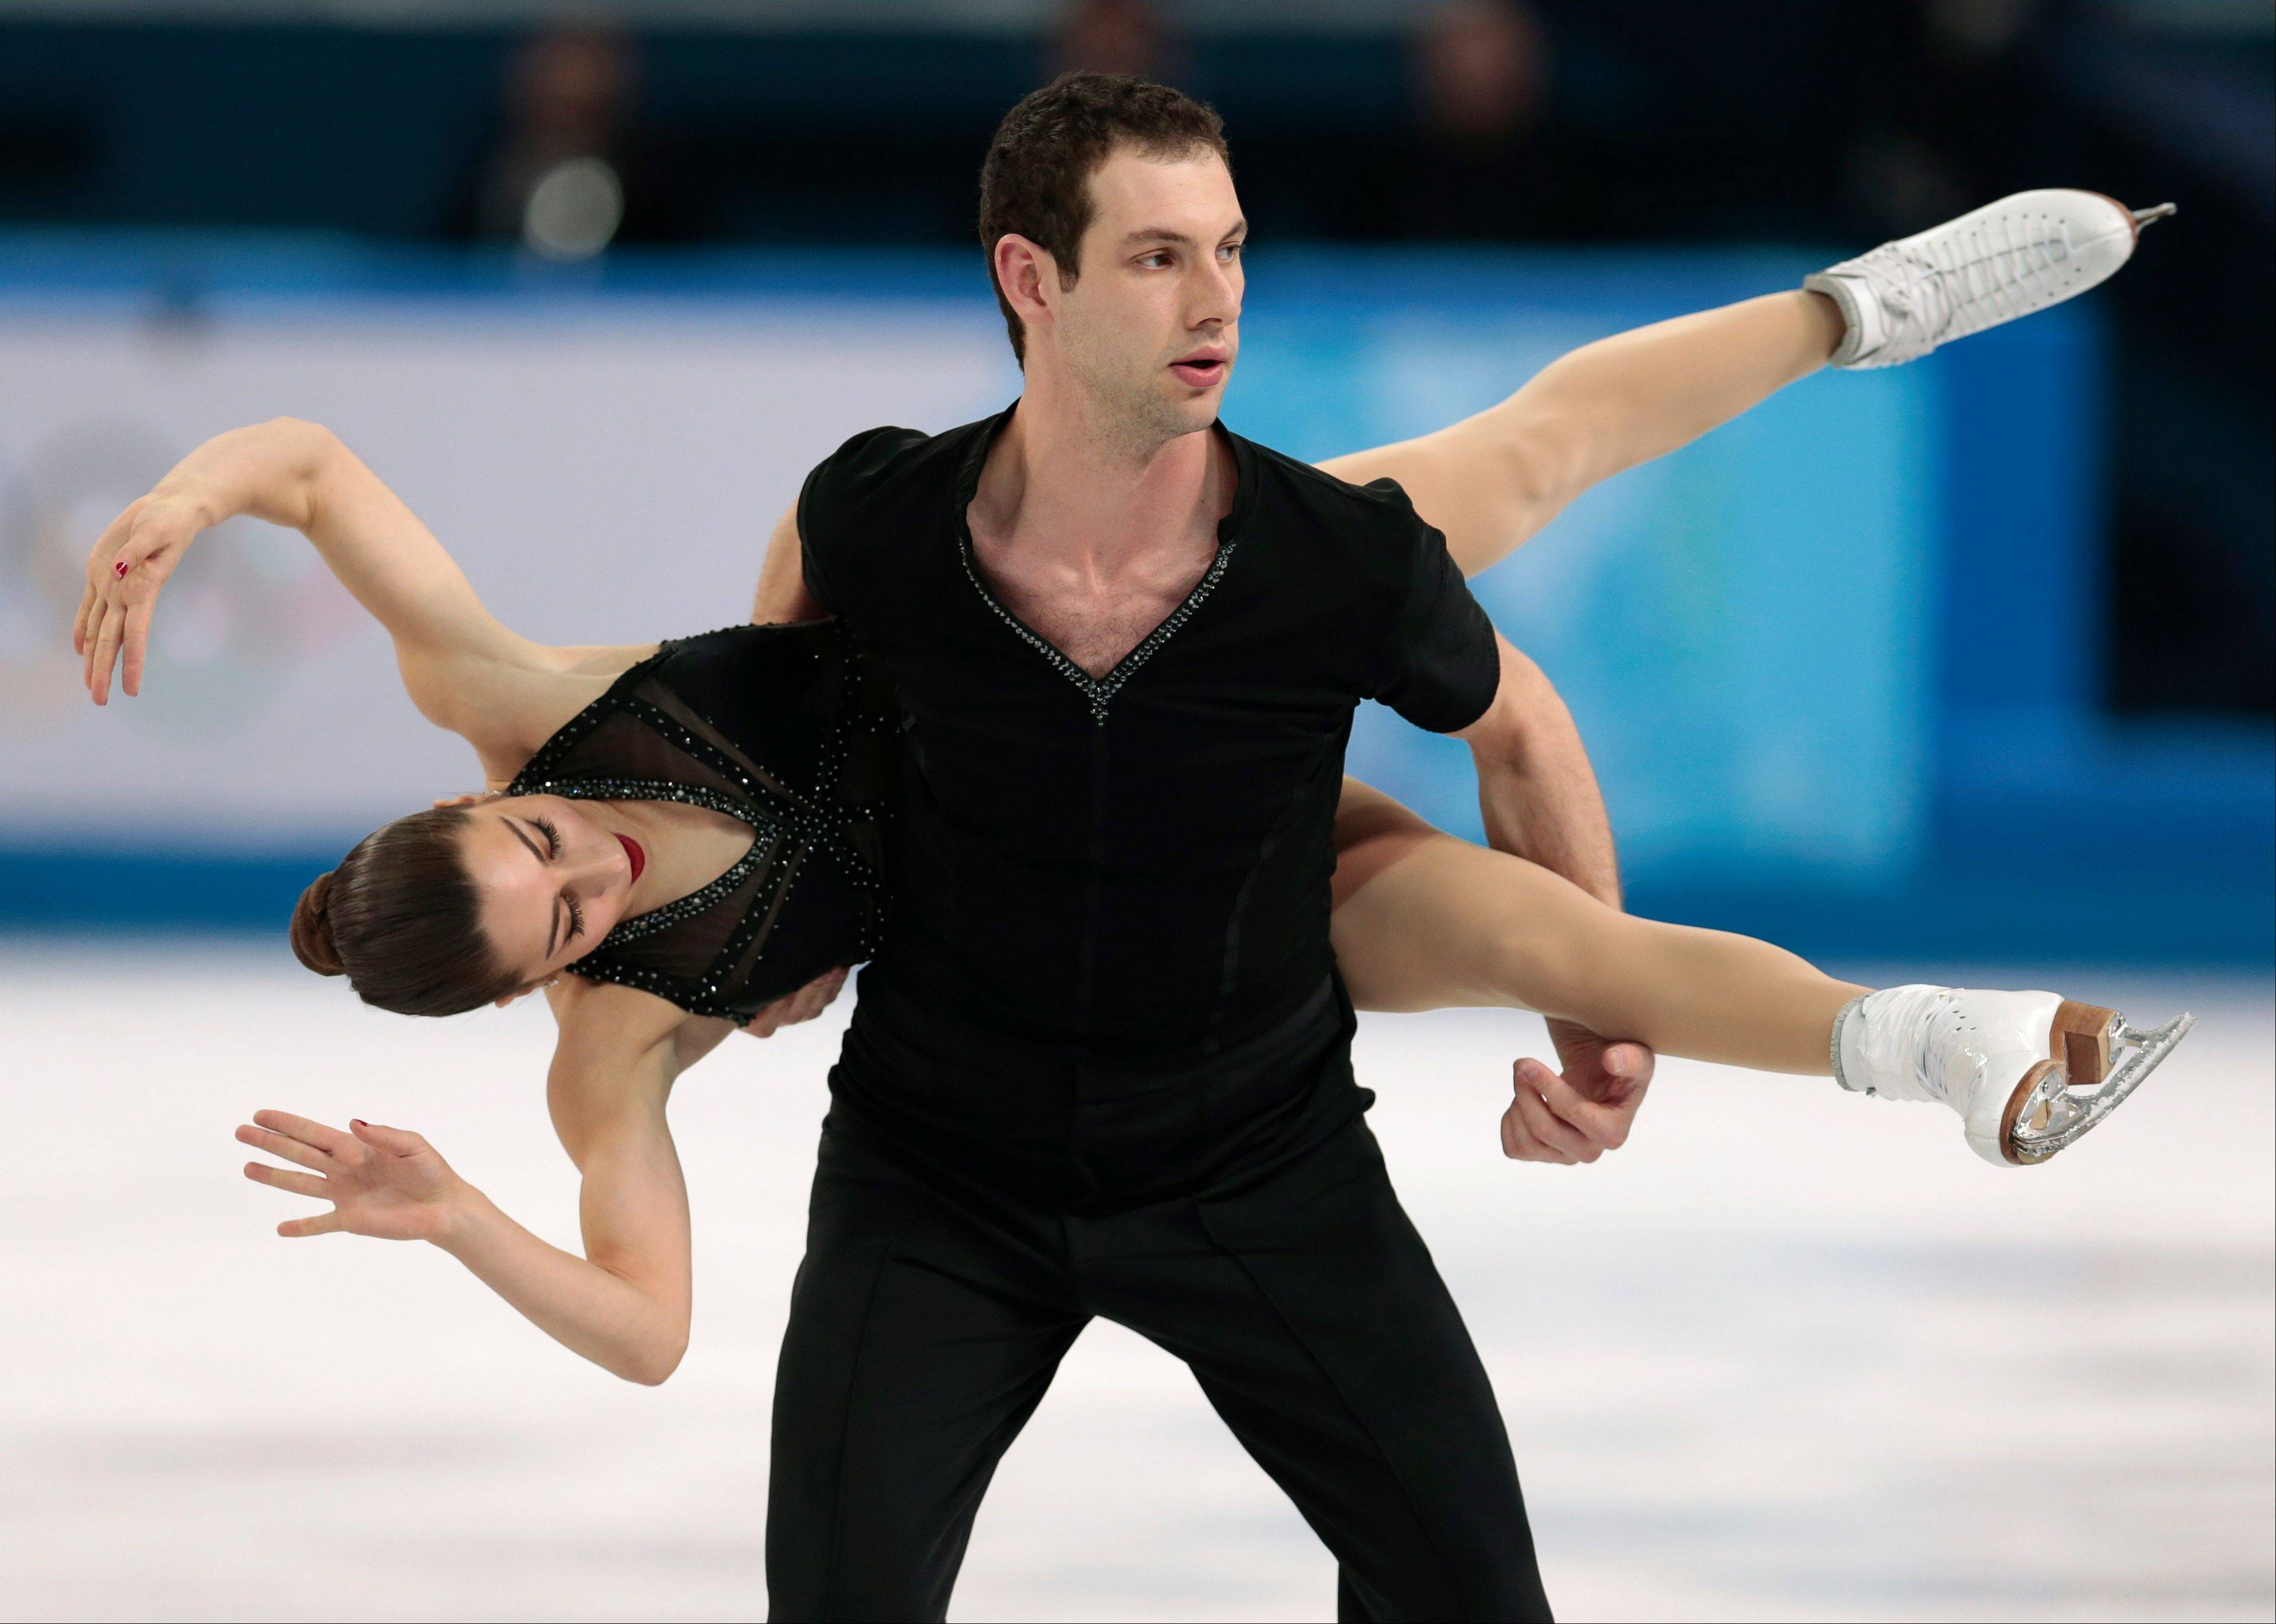 Marissa Castelli and Simon Shnapir of The United States compete in the team pairs short program igure skating competition at the Iceberg Skating Palace during the 2014 Winter Olympics, Thursday